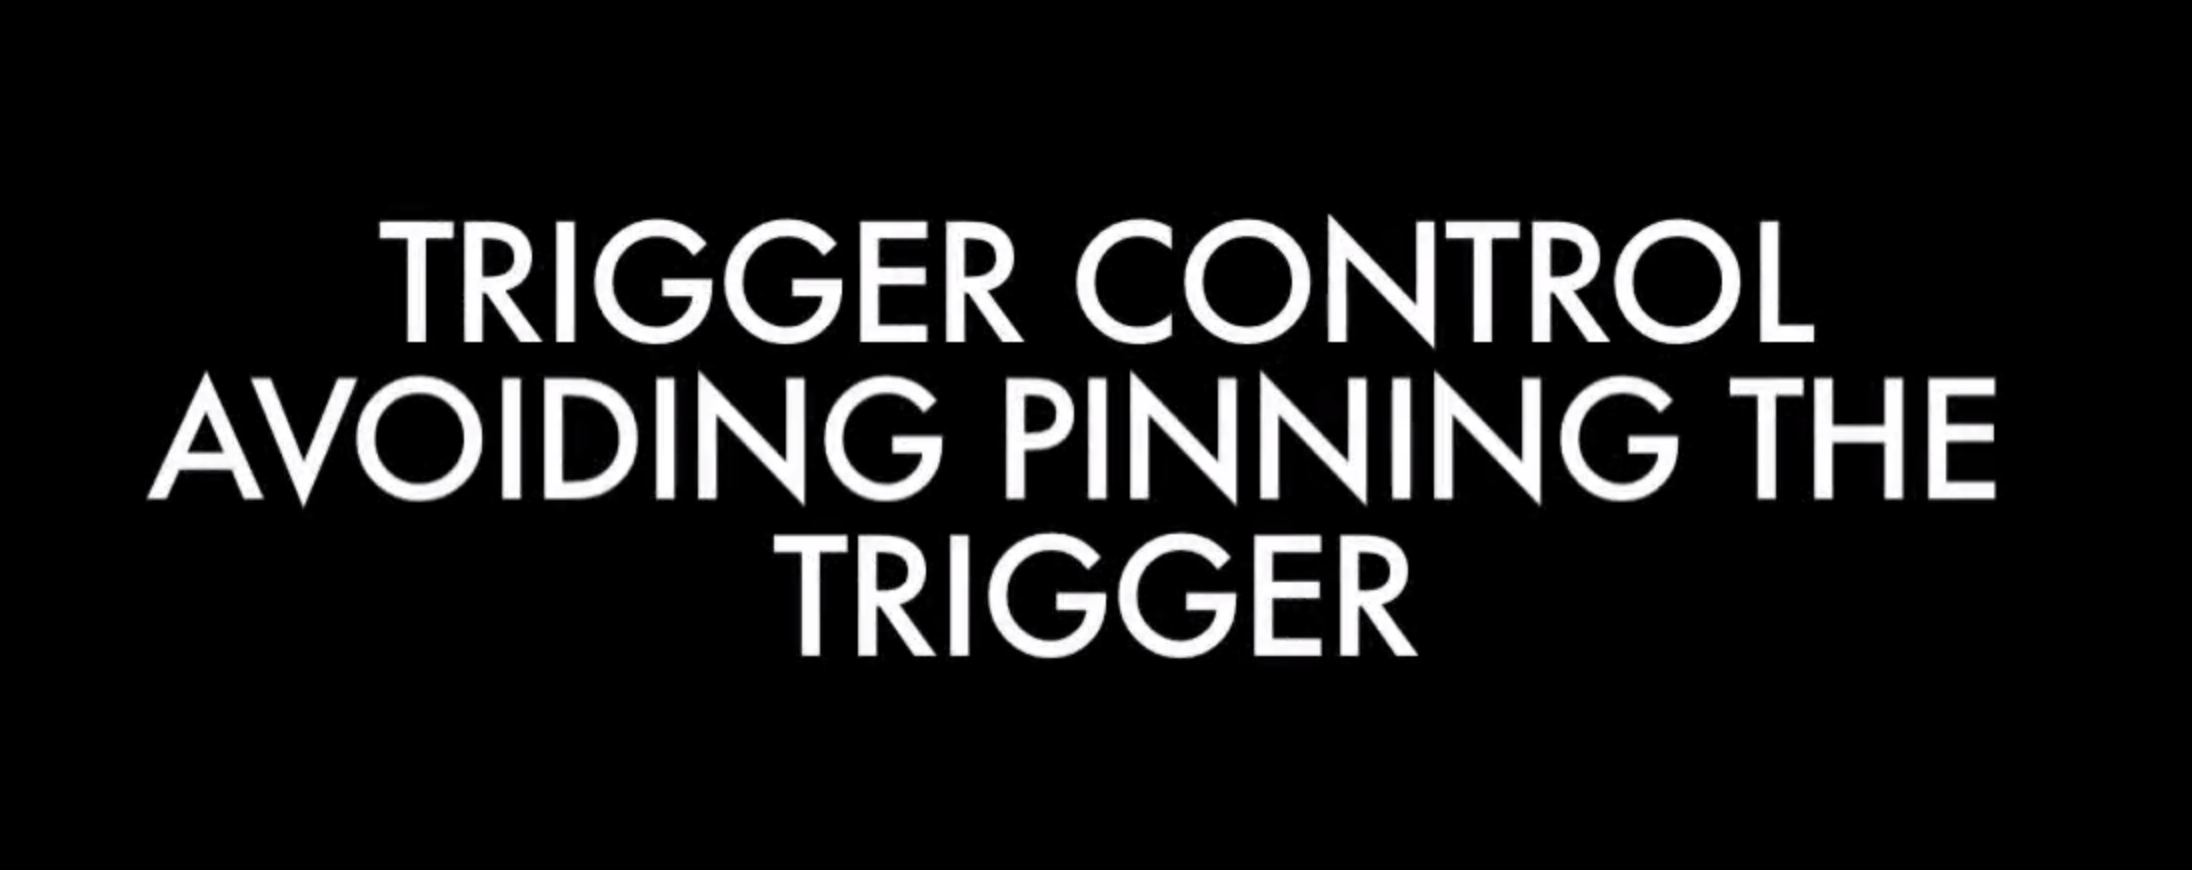 avoid pinning trigger